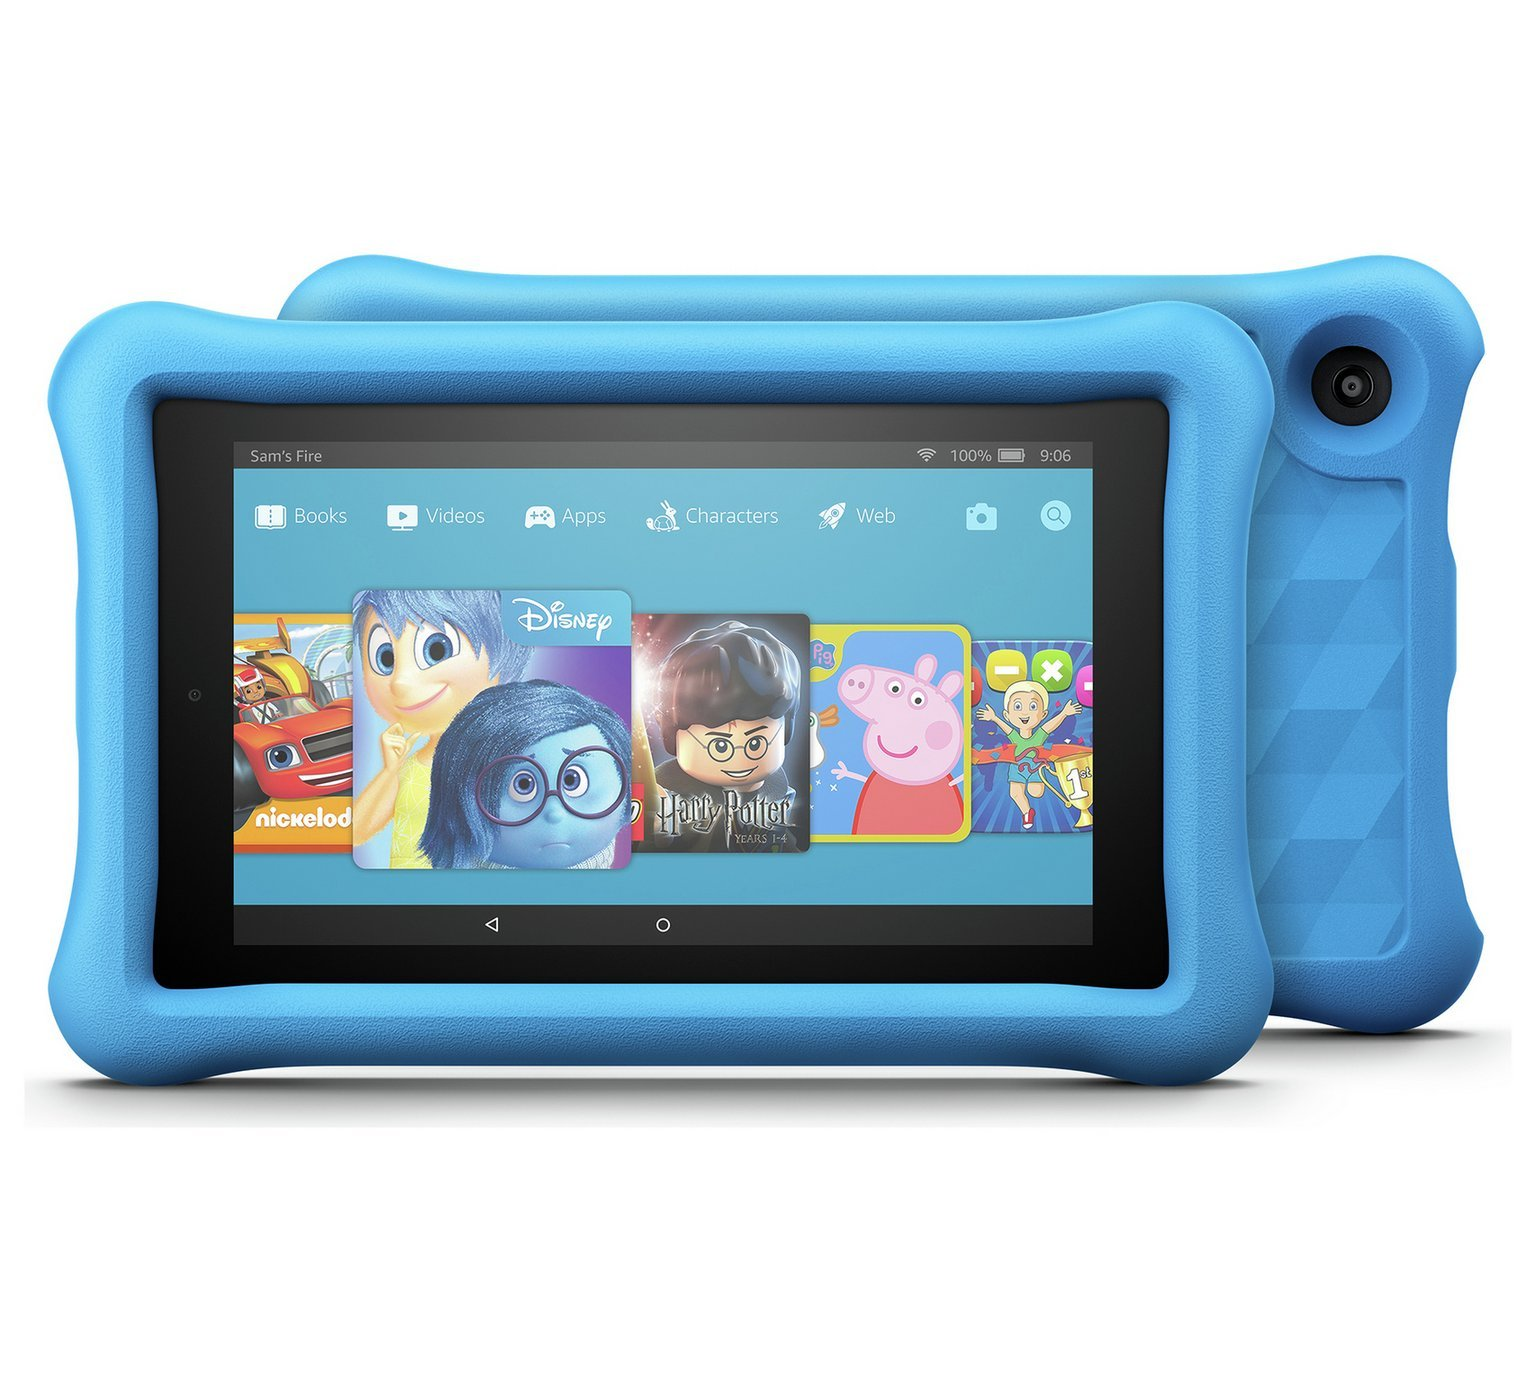 Amazon Fire 7 Kids Edition 7 Inch 16GB Tablet review